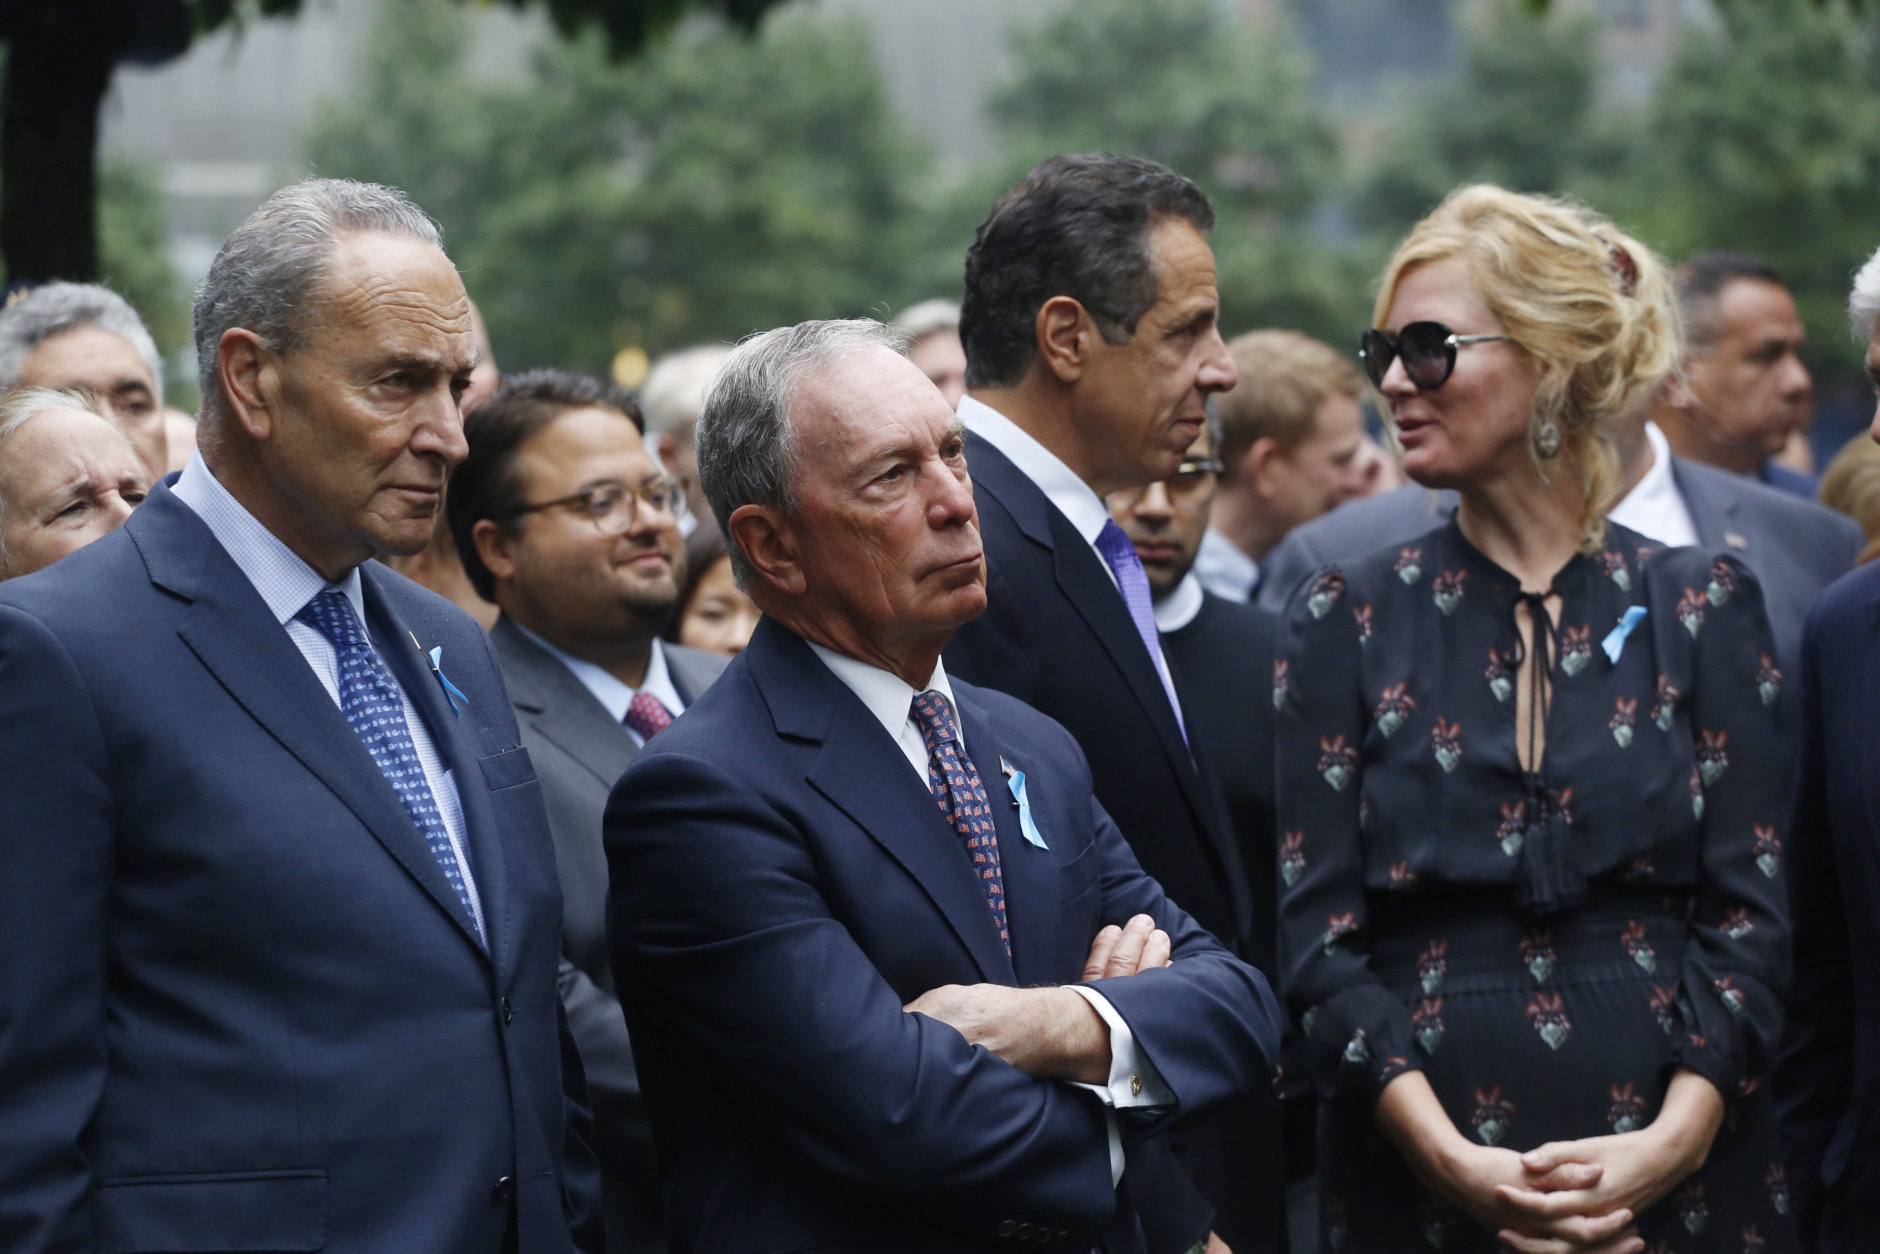 From left, U.S. Senator Chuck Schumer, D-NY, former New York Mayor Michael Bloomberg, New York Gov. Andrew Cuomo and his girlfriend, TV chef Sandra Lee, attend the ceremony marking the 17th anniversary of the terrorist attacks on the United States, Tuesday, Sept. 11, 2018, in New York.  (AP Photo/Mark Lennihan)